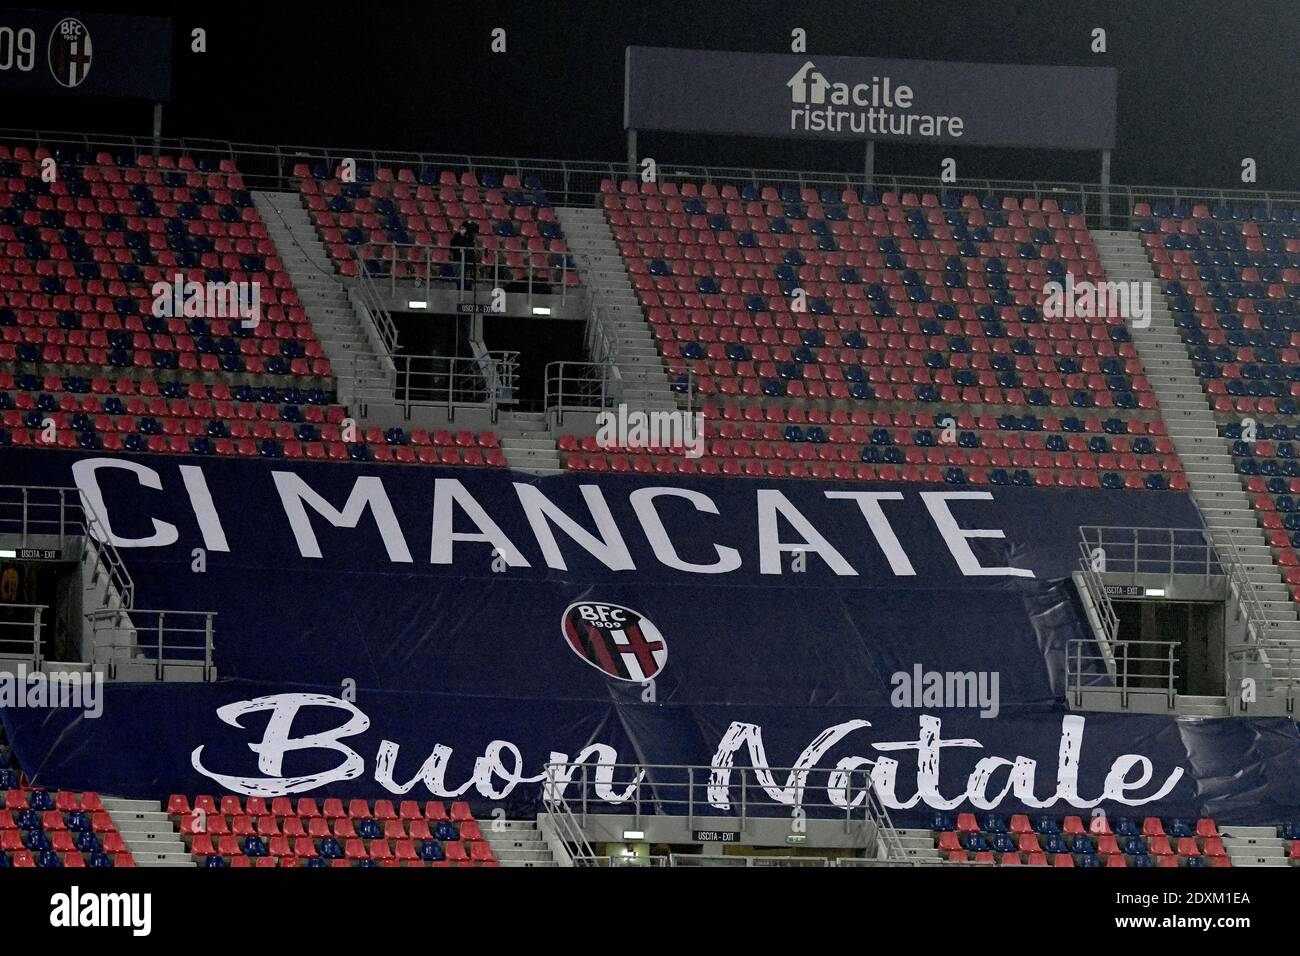 Buon Natale Ultras.Supporters Bologna High Resolution Stock Photography And Images Alamy